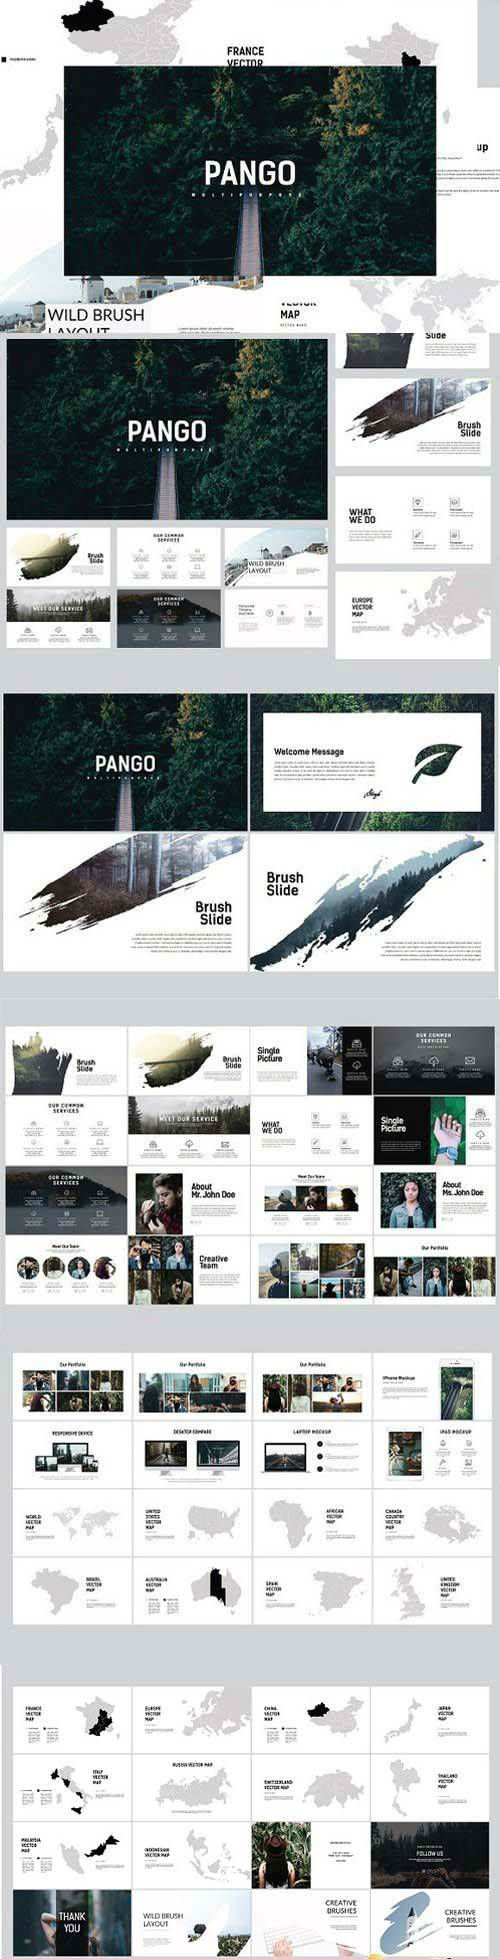 Pango Powerpoint Template 1258801